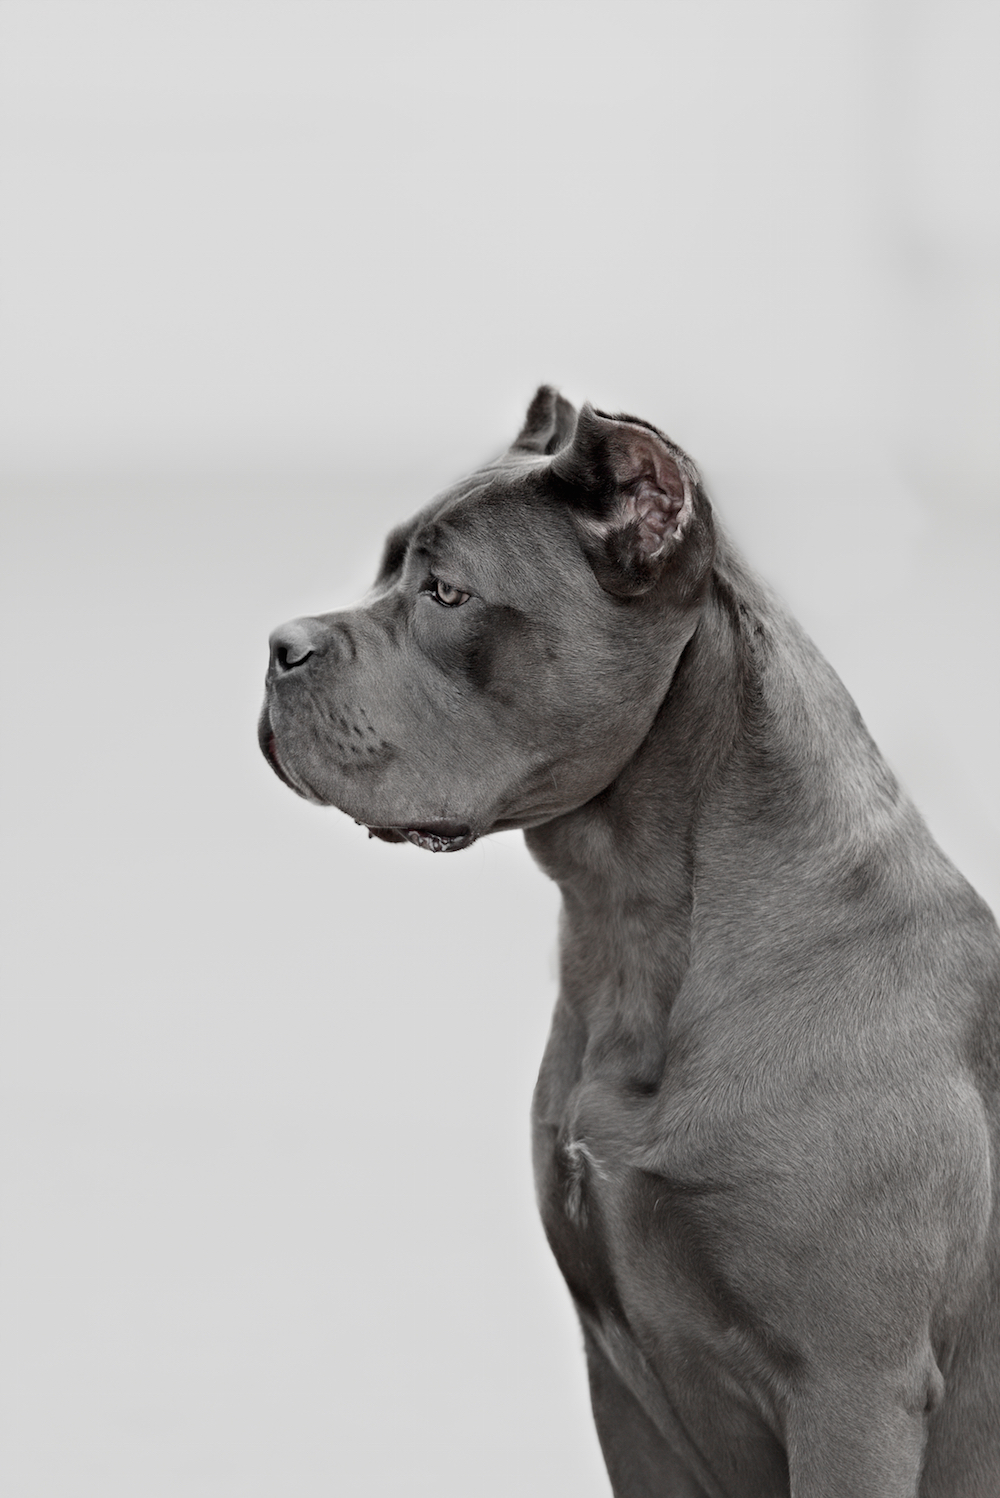 The Cane Corso should be a nobile breed, and a relatively short coat lends to that air of regalness.